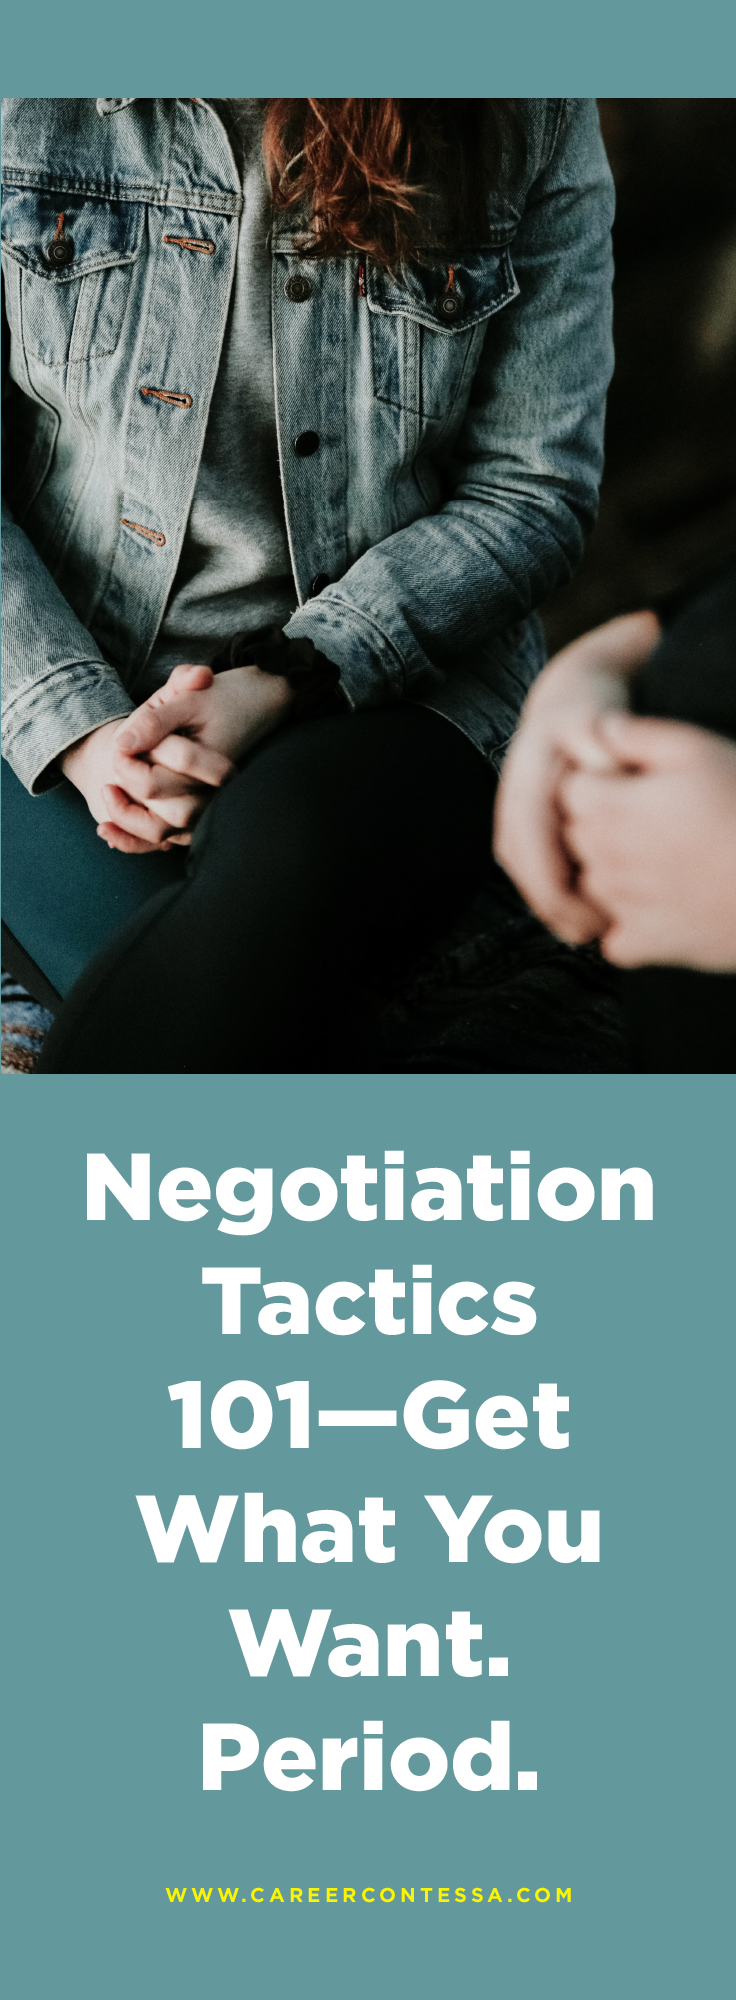 Negotiation Tactics 101 Get What You Want Period Career Contessa Business Advice Entrepreneurship Career Contessa Negotiation